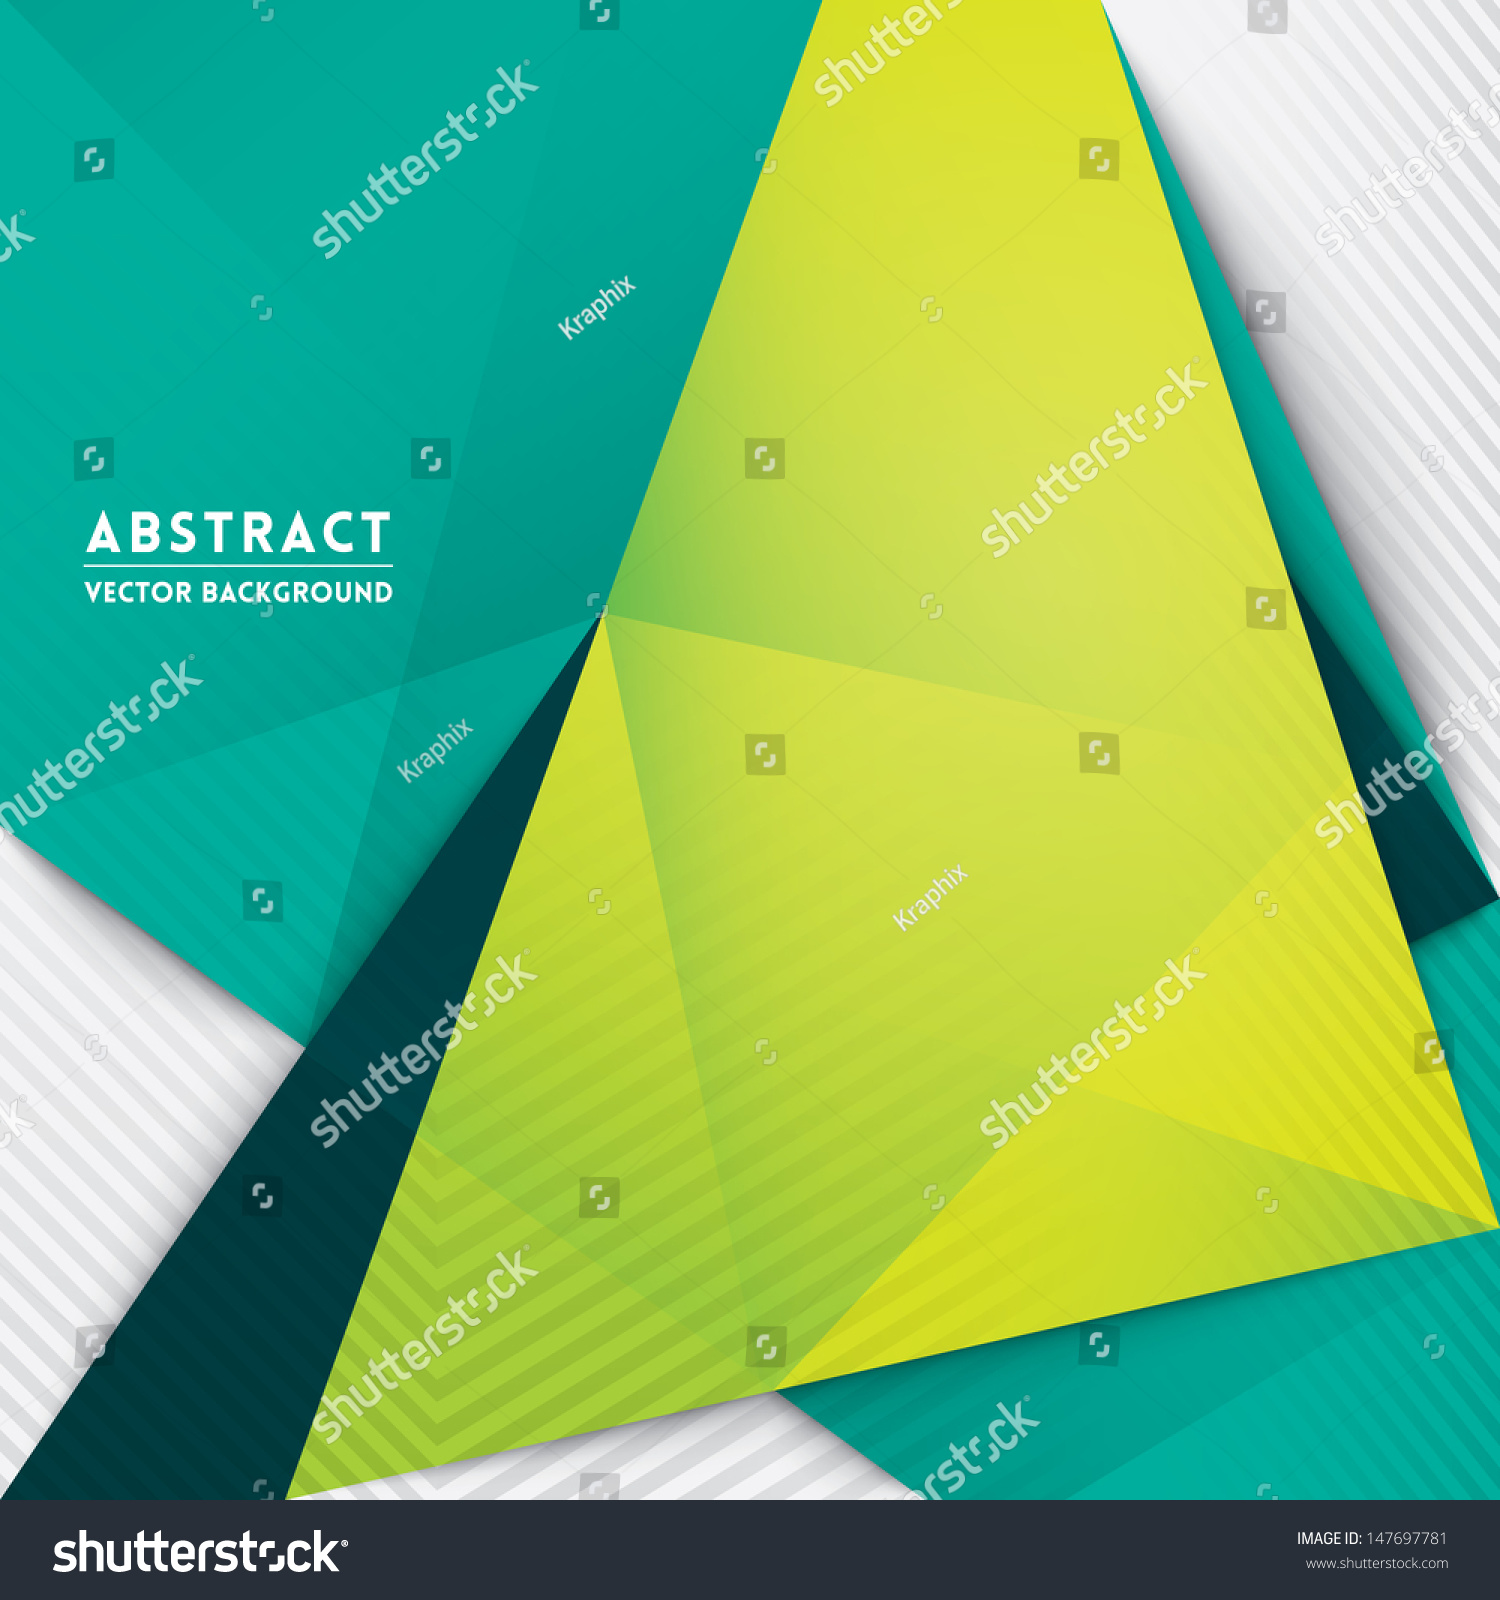 Abstract Book Cover Background ~ Abstract triangle shape background web design stock vector